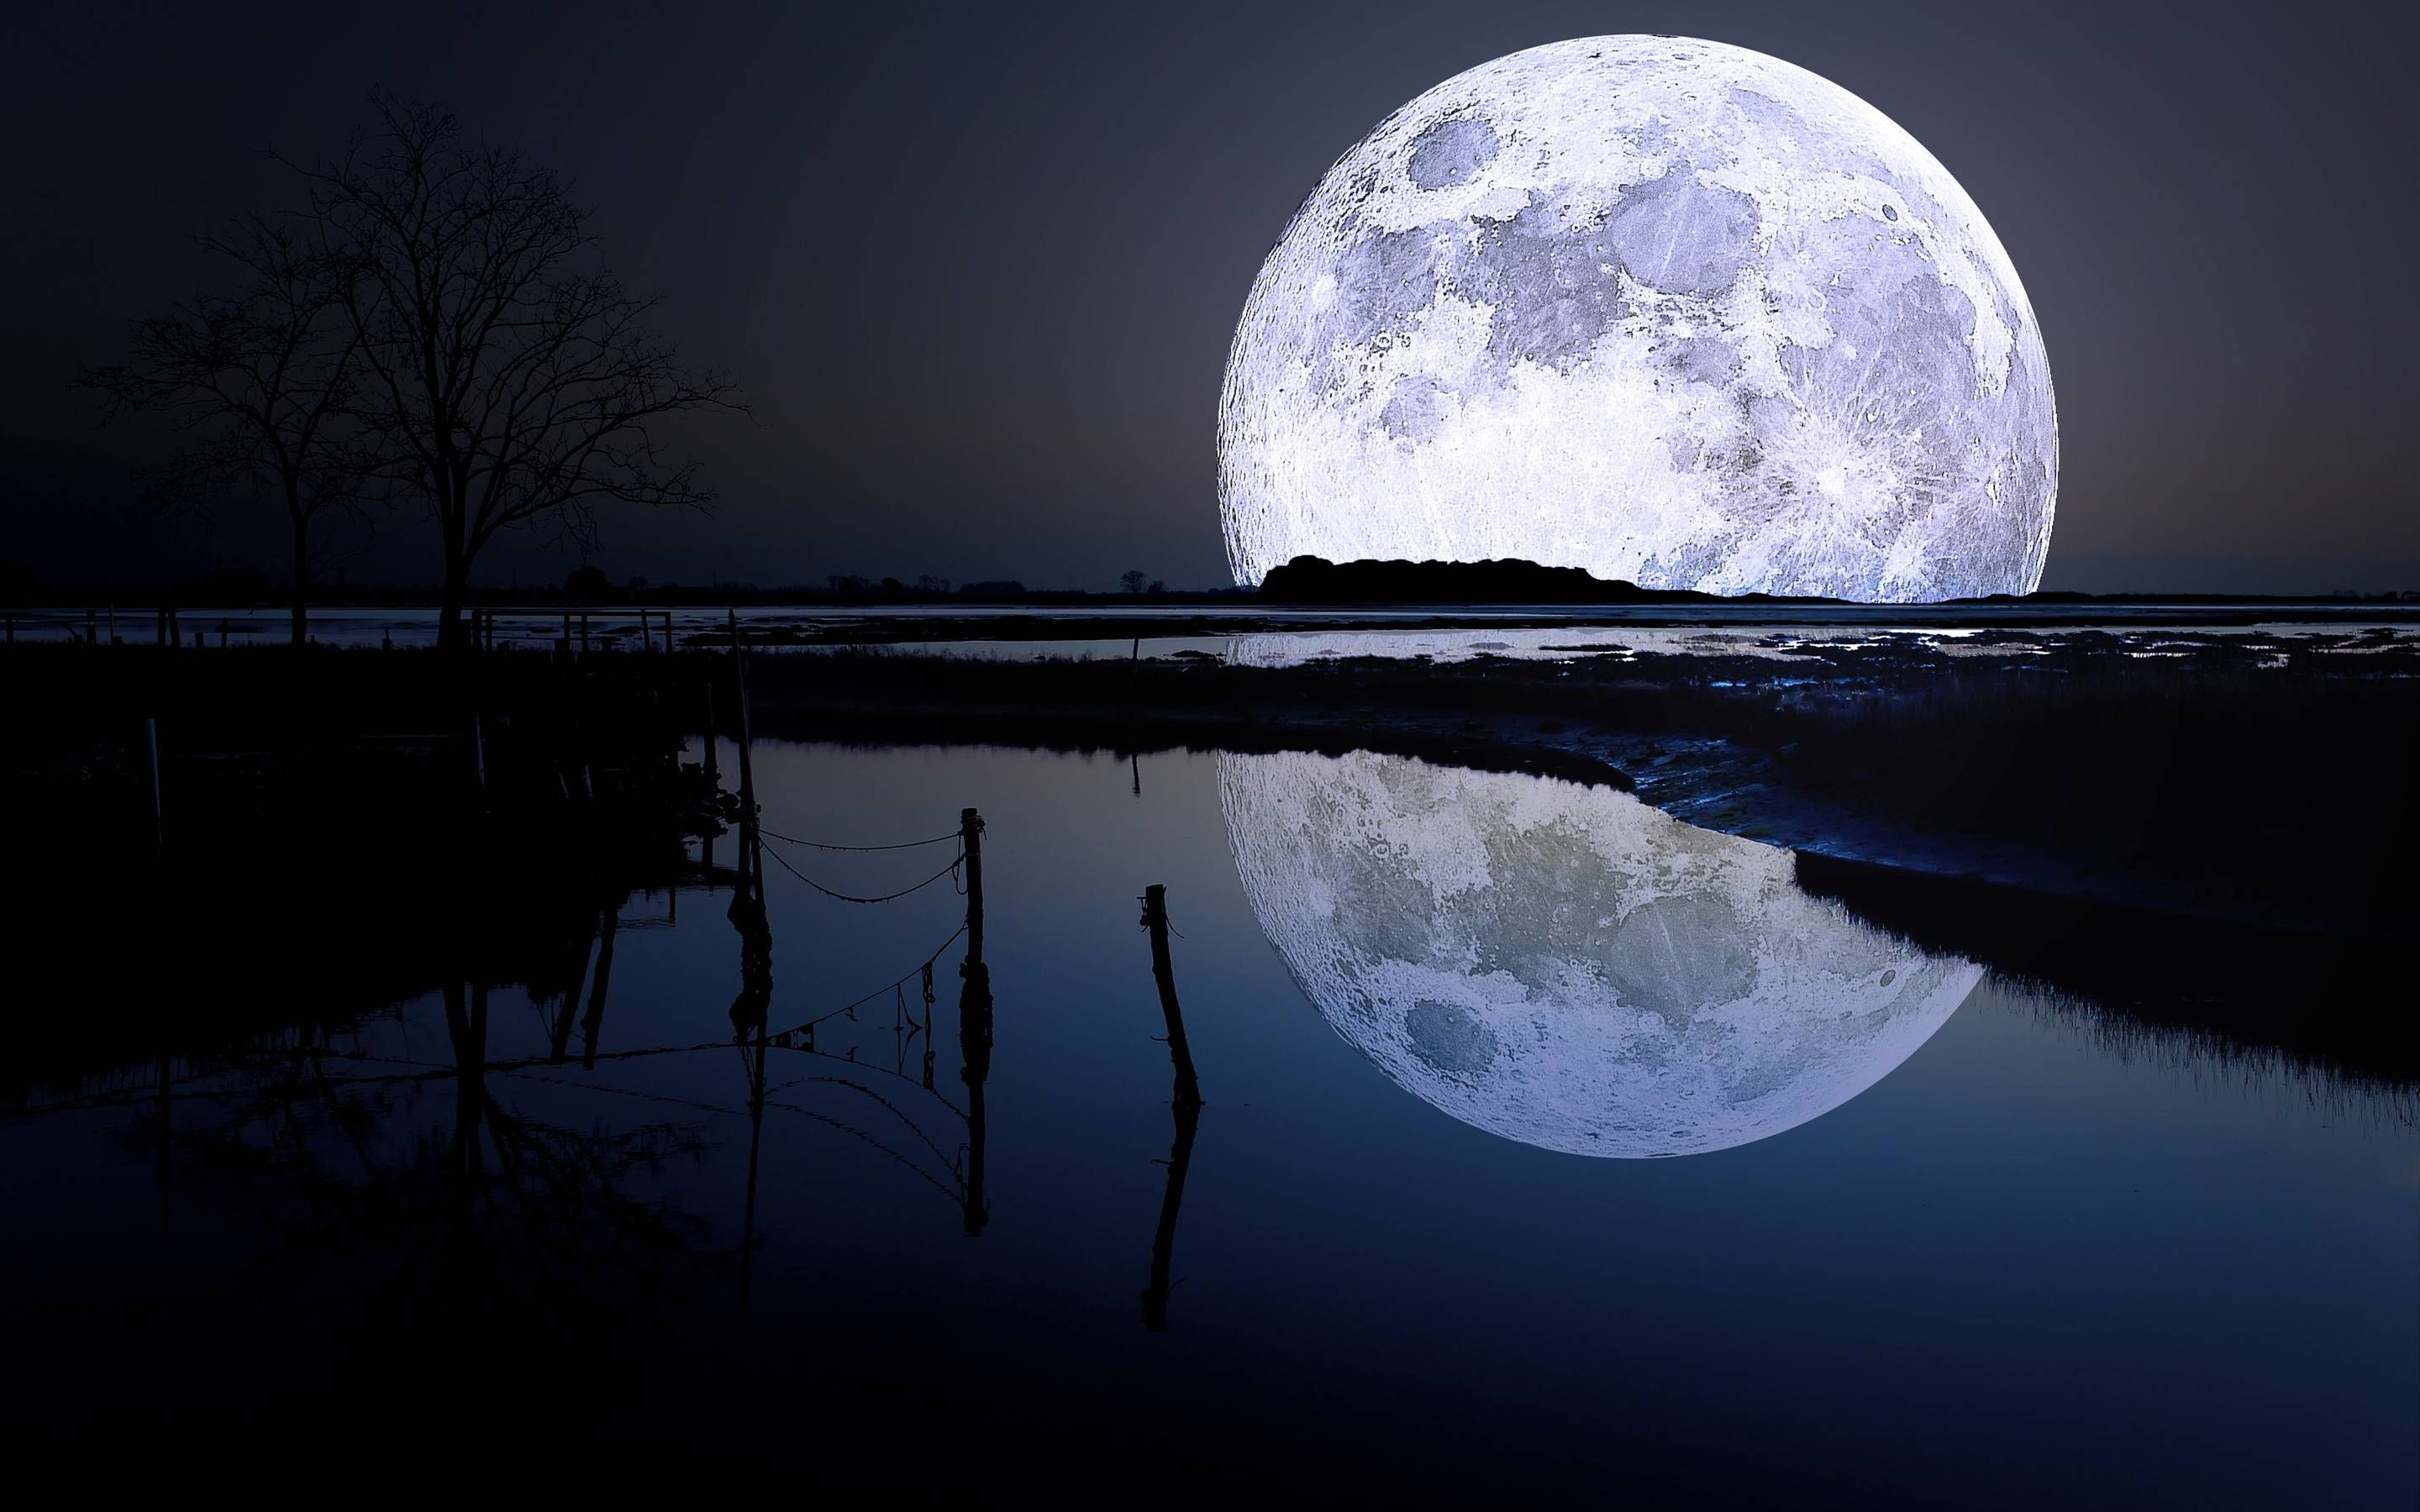 full moon wallpaper pics - 2018 wallpapers hd | moon and wallpaper